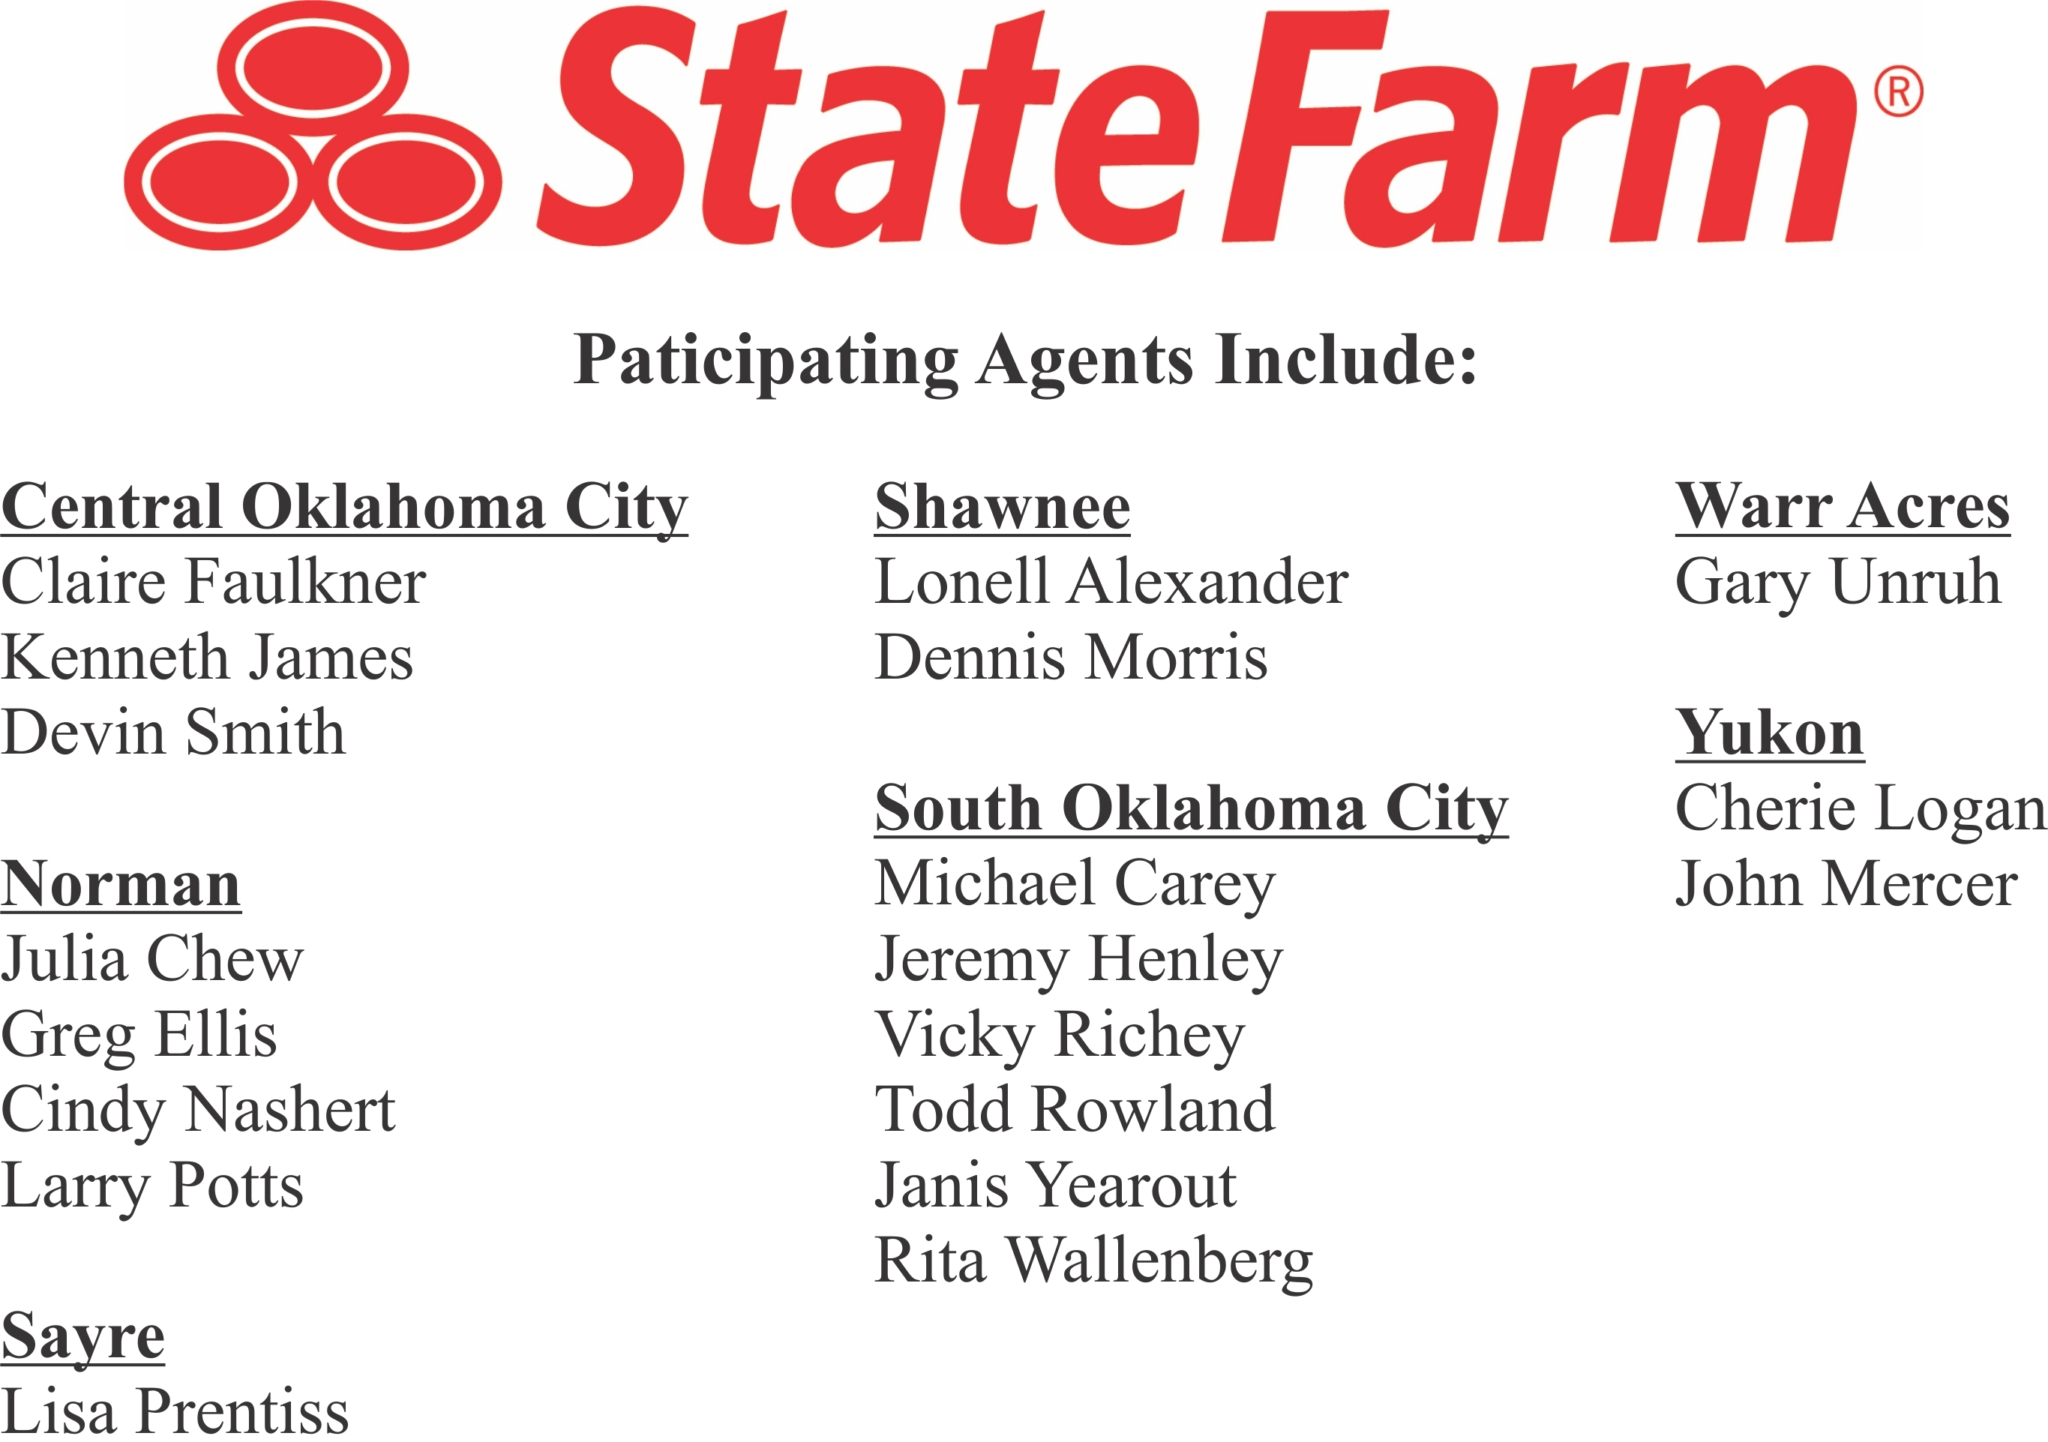 state-farm-agent-horizontal-page-2